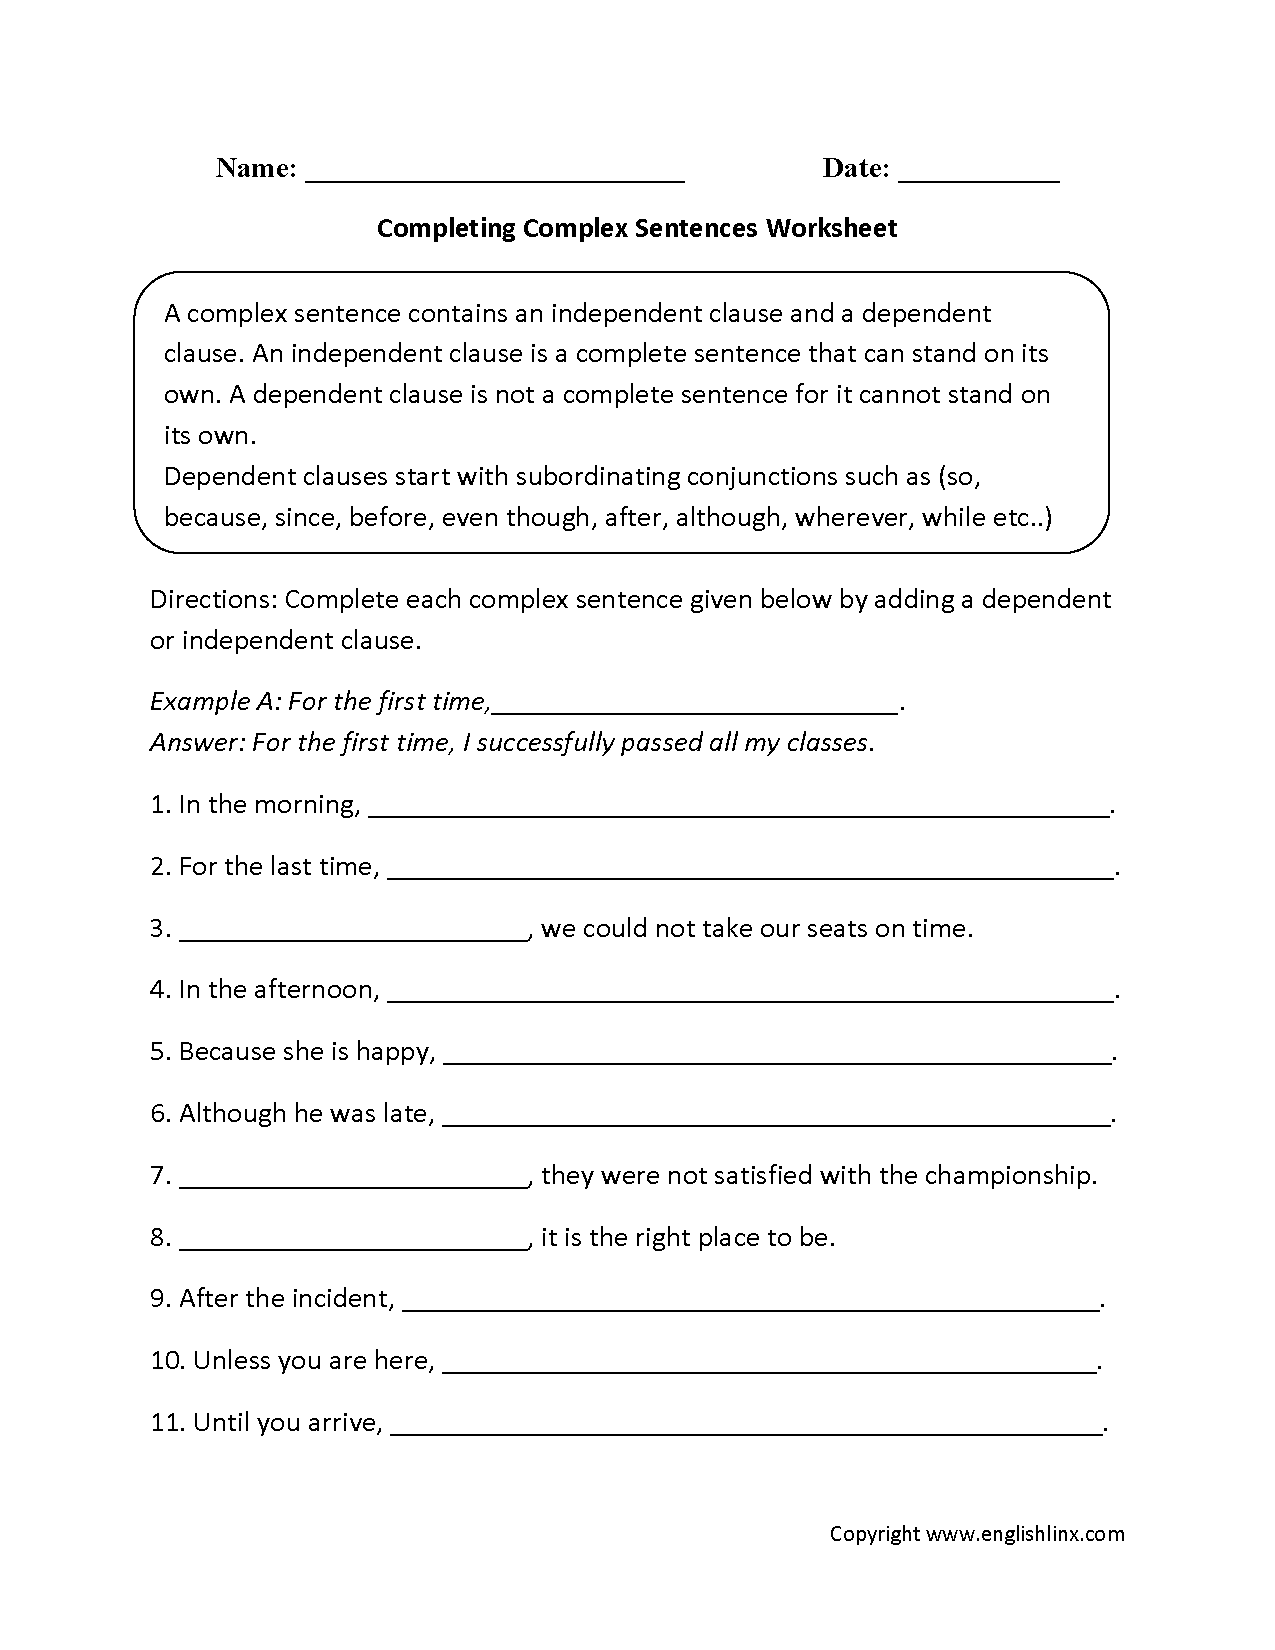 Completing Complex Sentences Worksheets